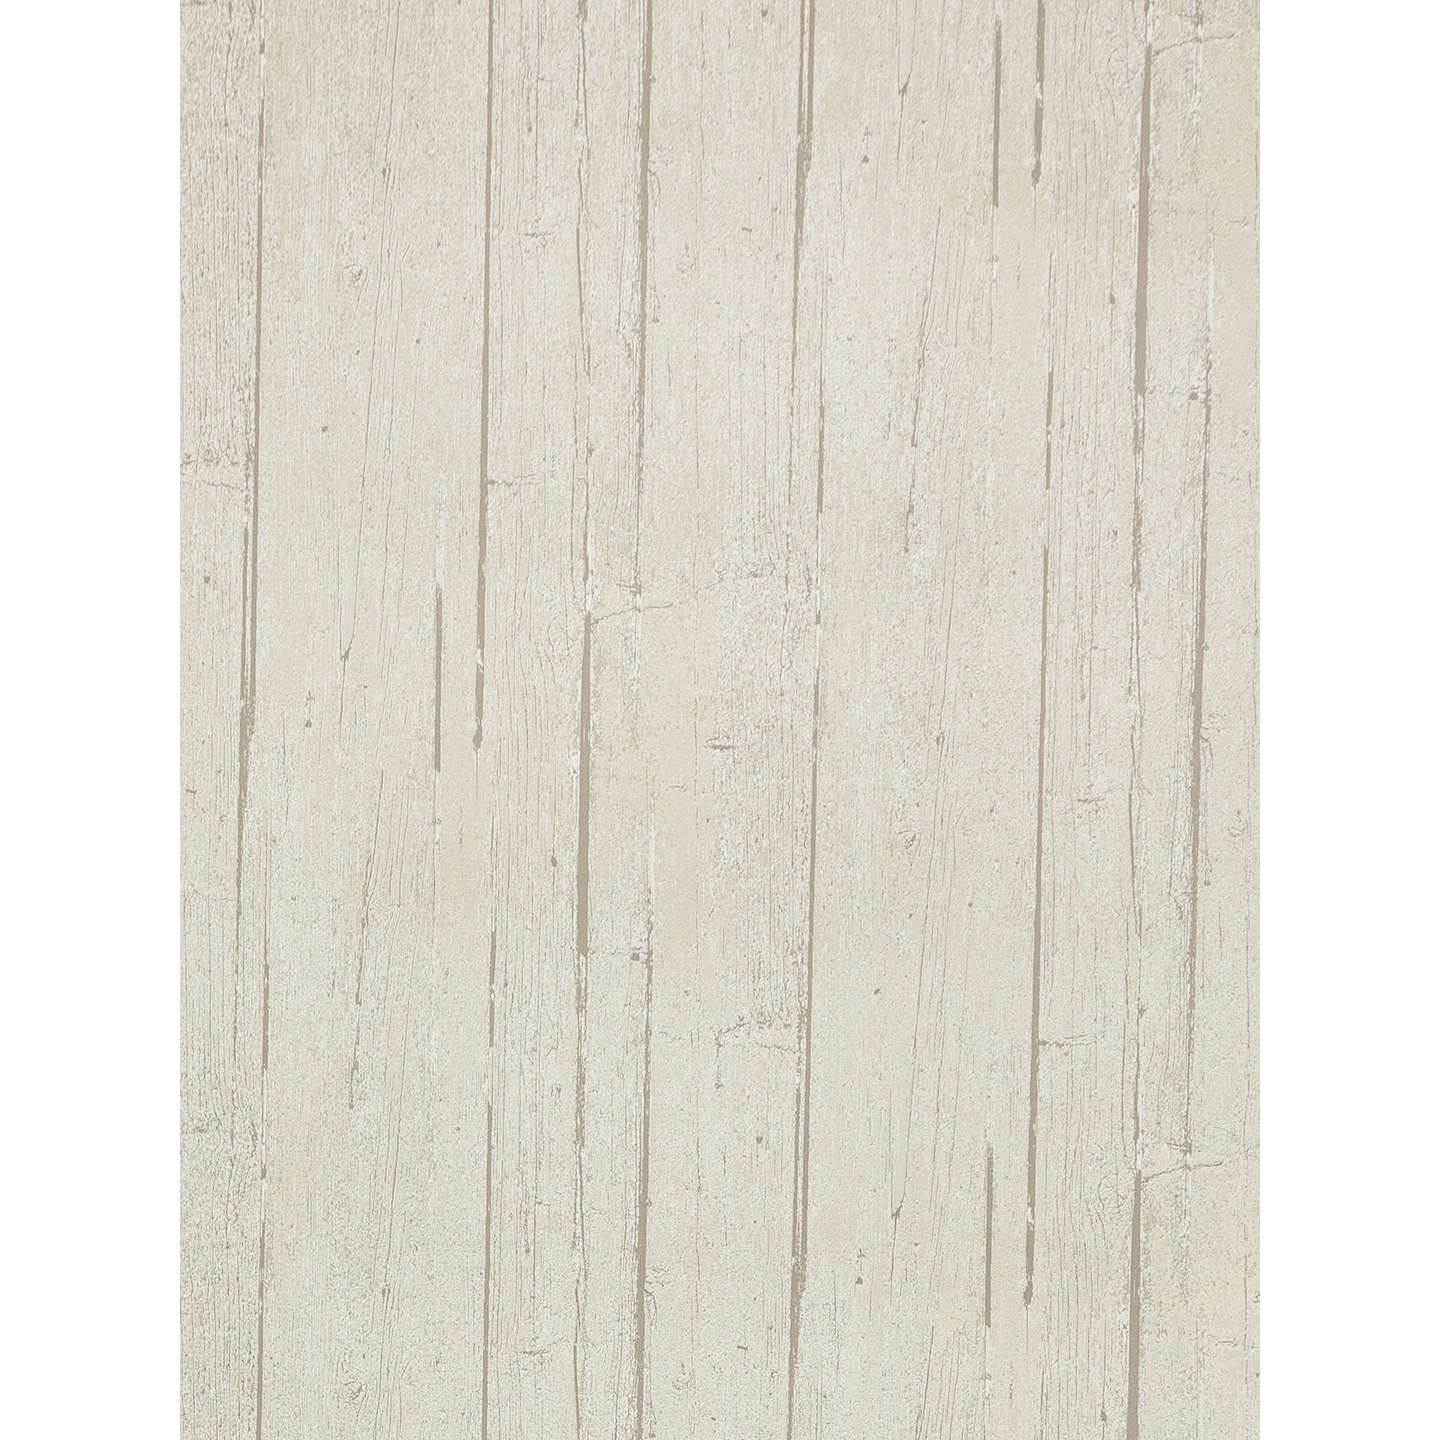 BuyMulberry Home Wood Panel Wallpaper Dove Grey FG081A22 Online At Johnlewis